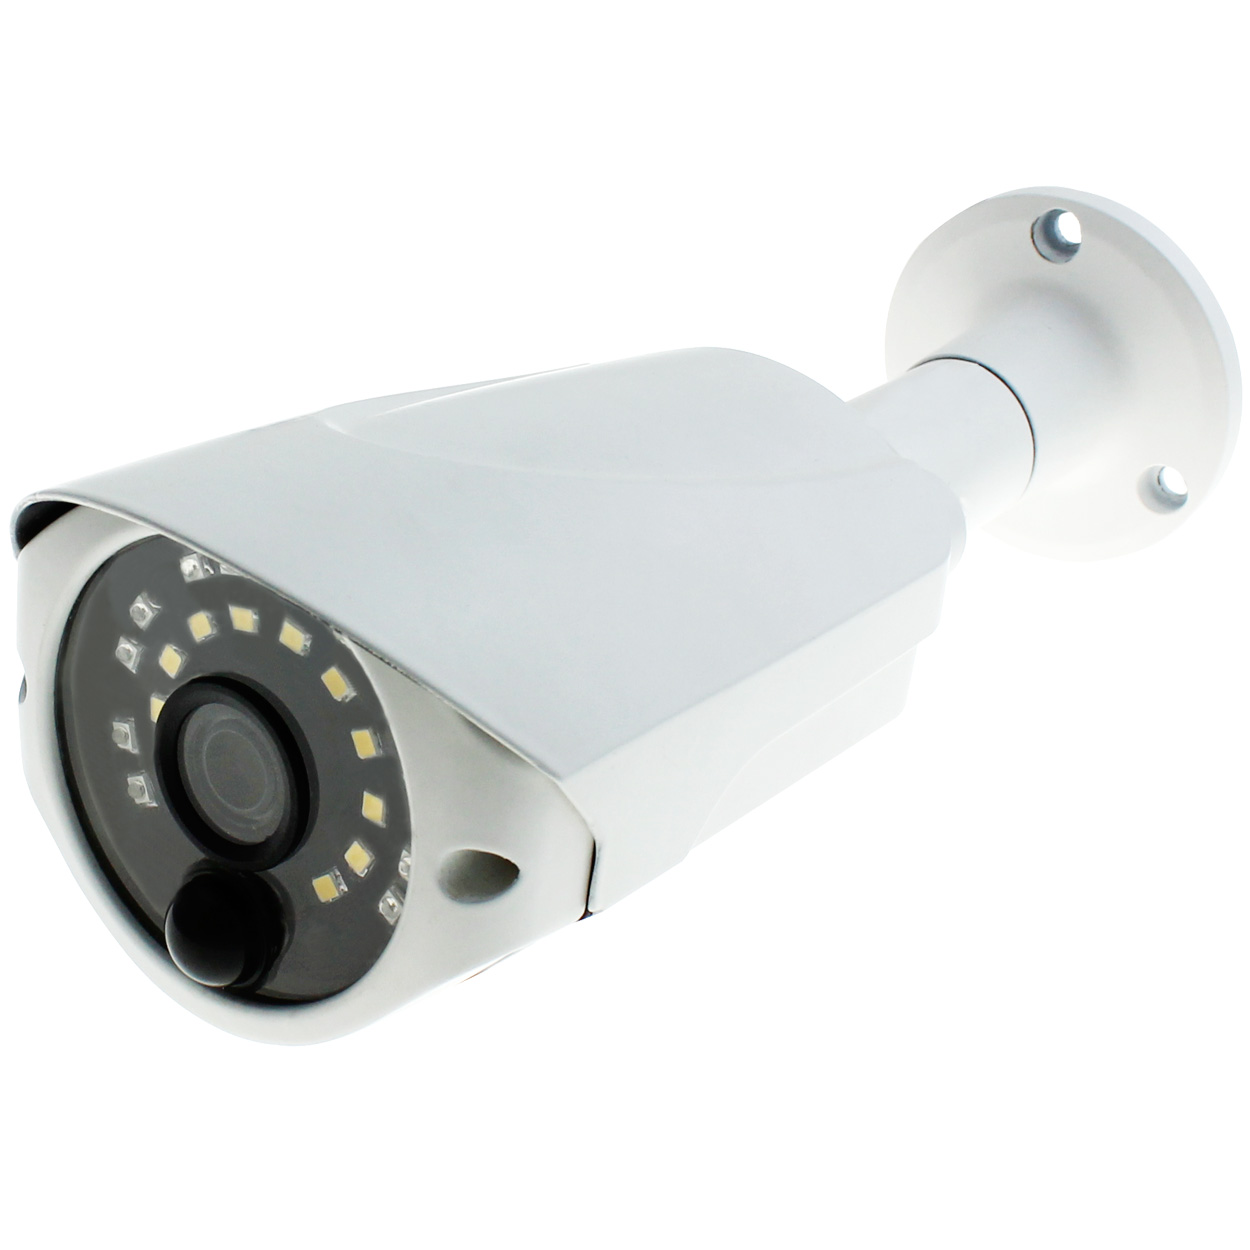 2.1MP HD-TVI Bullet Camera, 3.6mm Lens with Built-in Motion Sensor White LED (PIR Sensor)